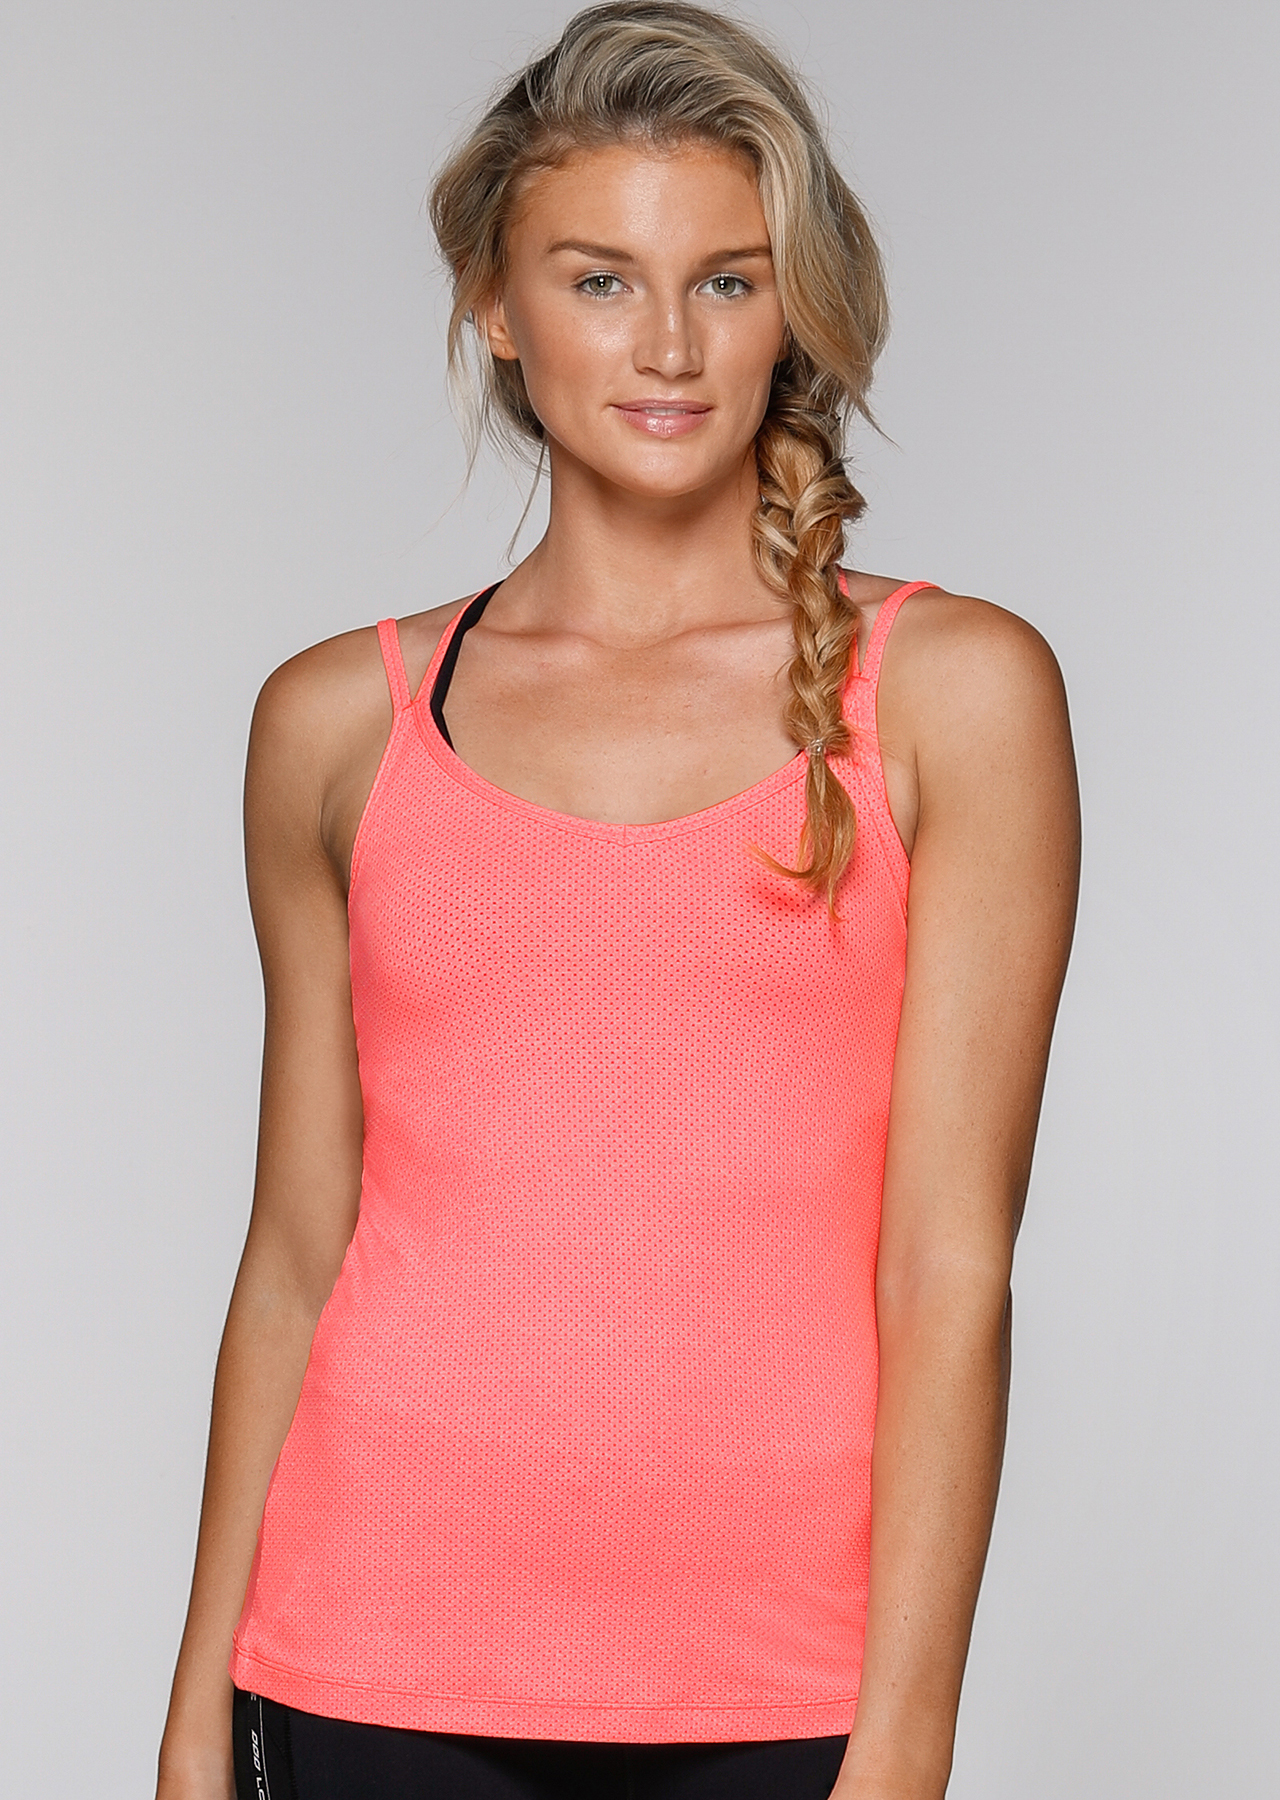 show some detail excel tank orange 081760 nnmm 1 - Sports & Fitness